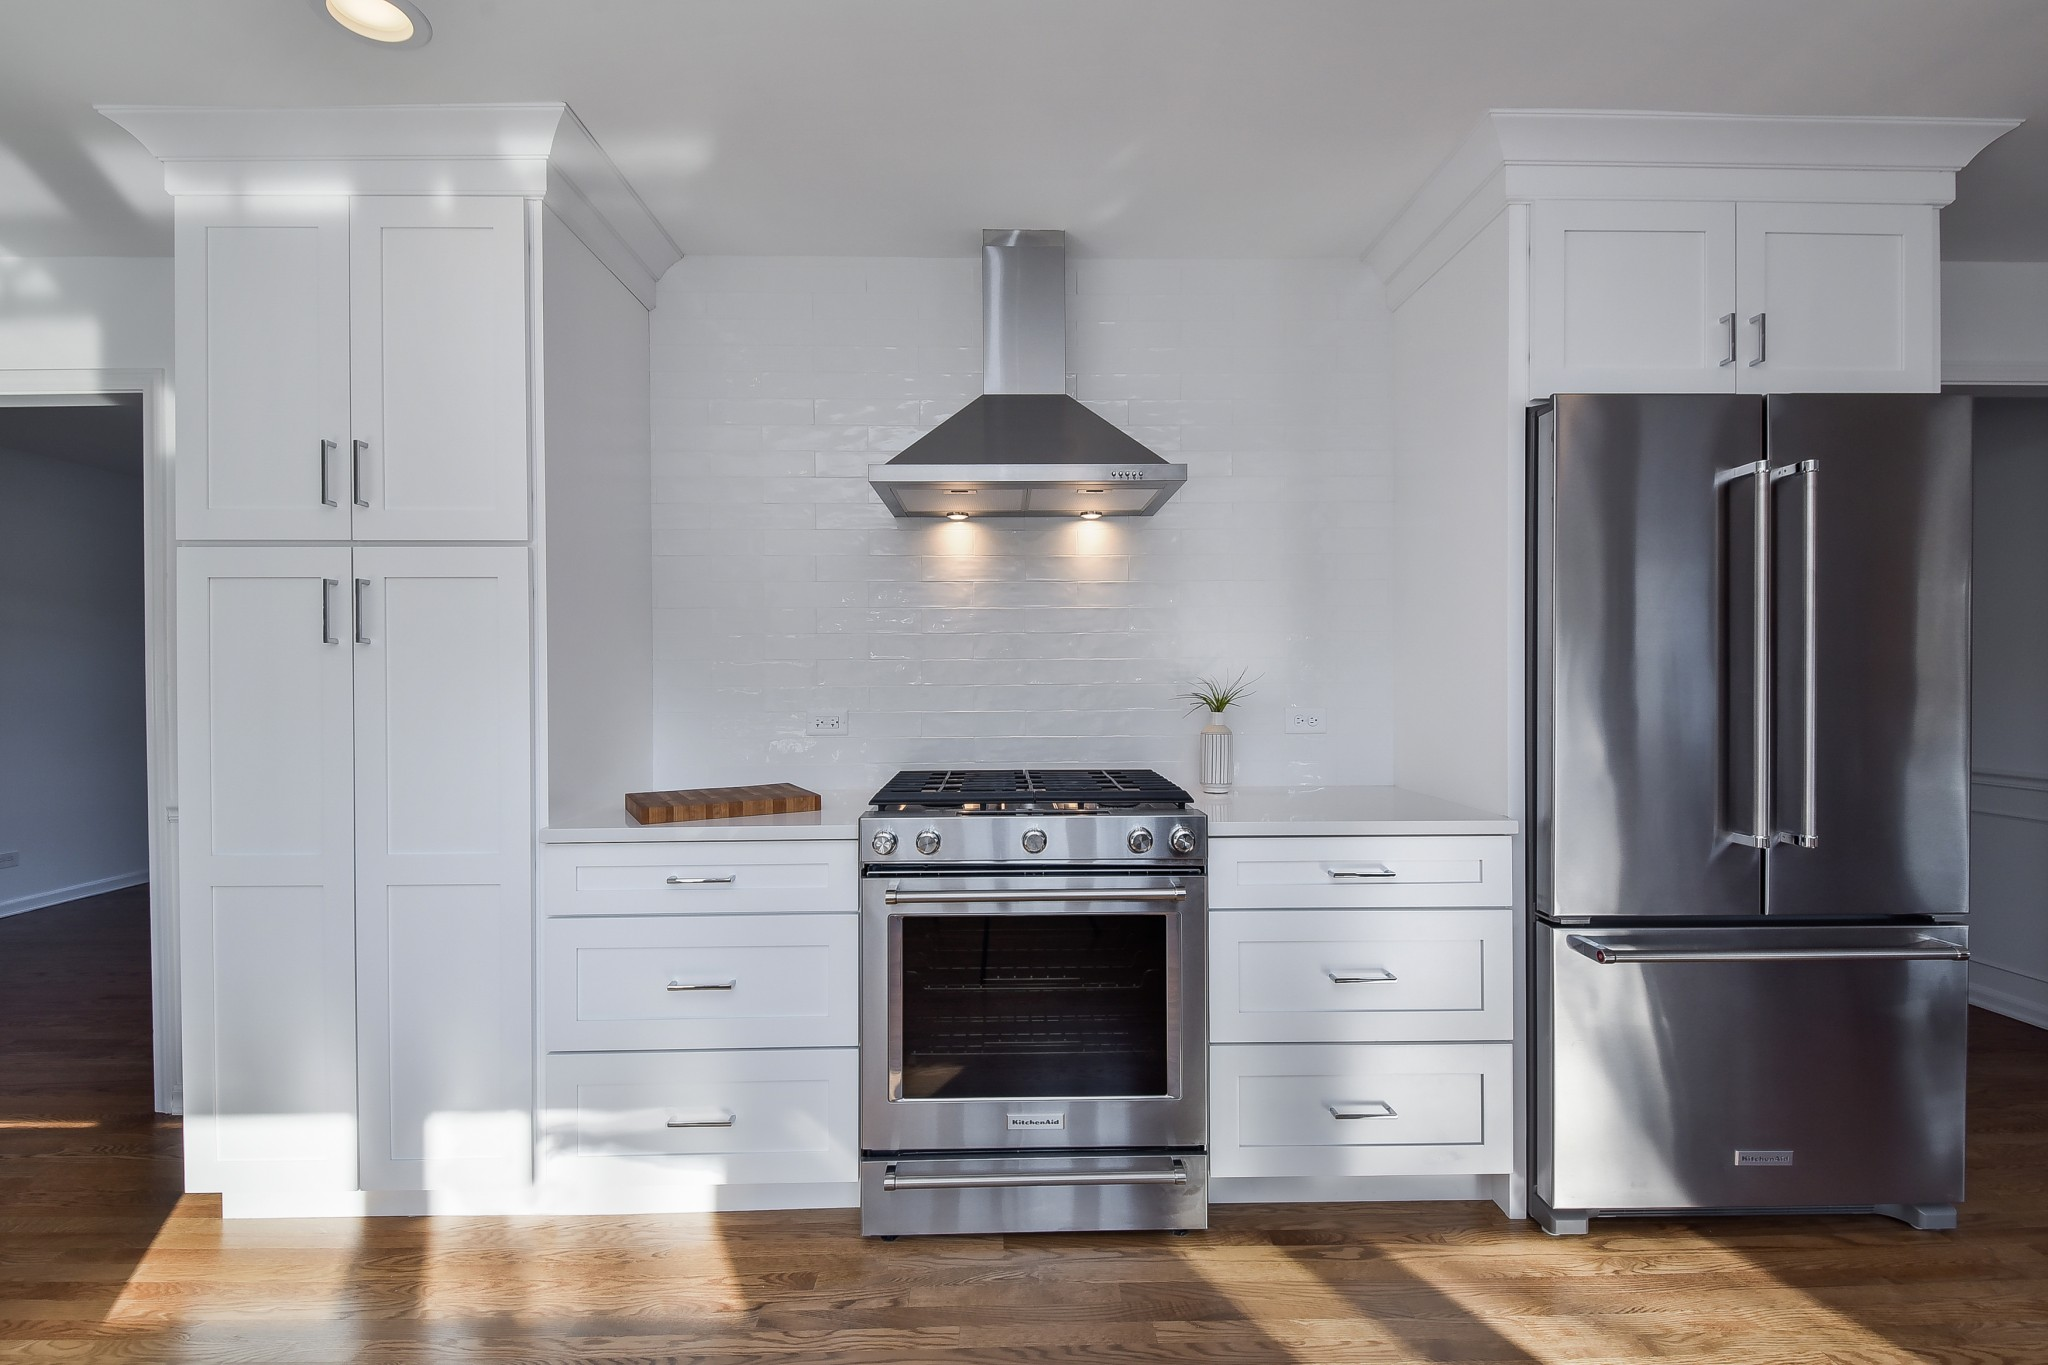 Buying Guide – Picking The Right Kitchen Appliances